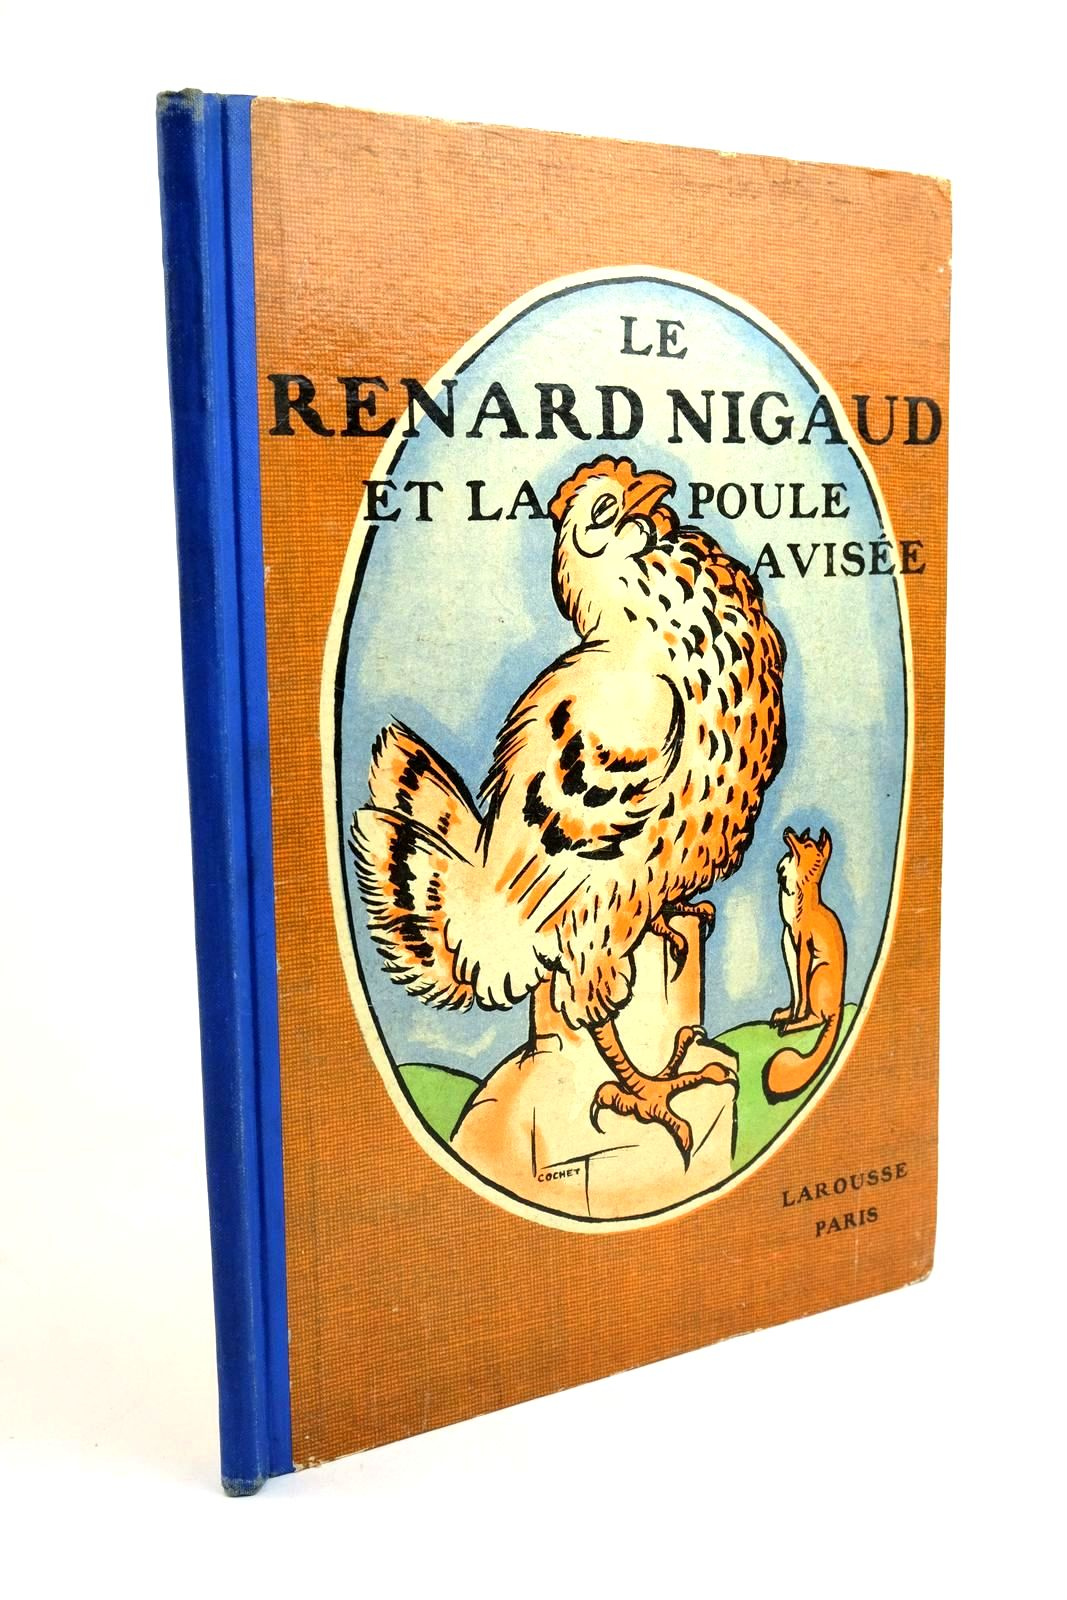 Photo of LE RENARD NIGAUD ET LA POULE AVISEE illustrated by Le Fanu, B. Cochet, G. published by Larousse (STOCK CODE: 1321767)  for sale by Stella & Rose's Books